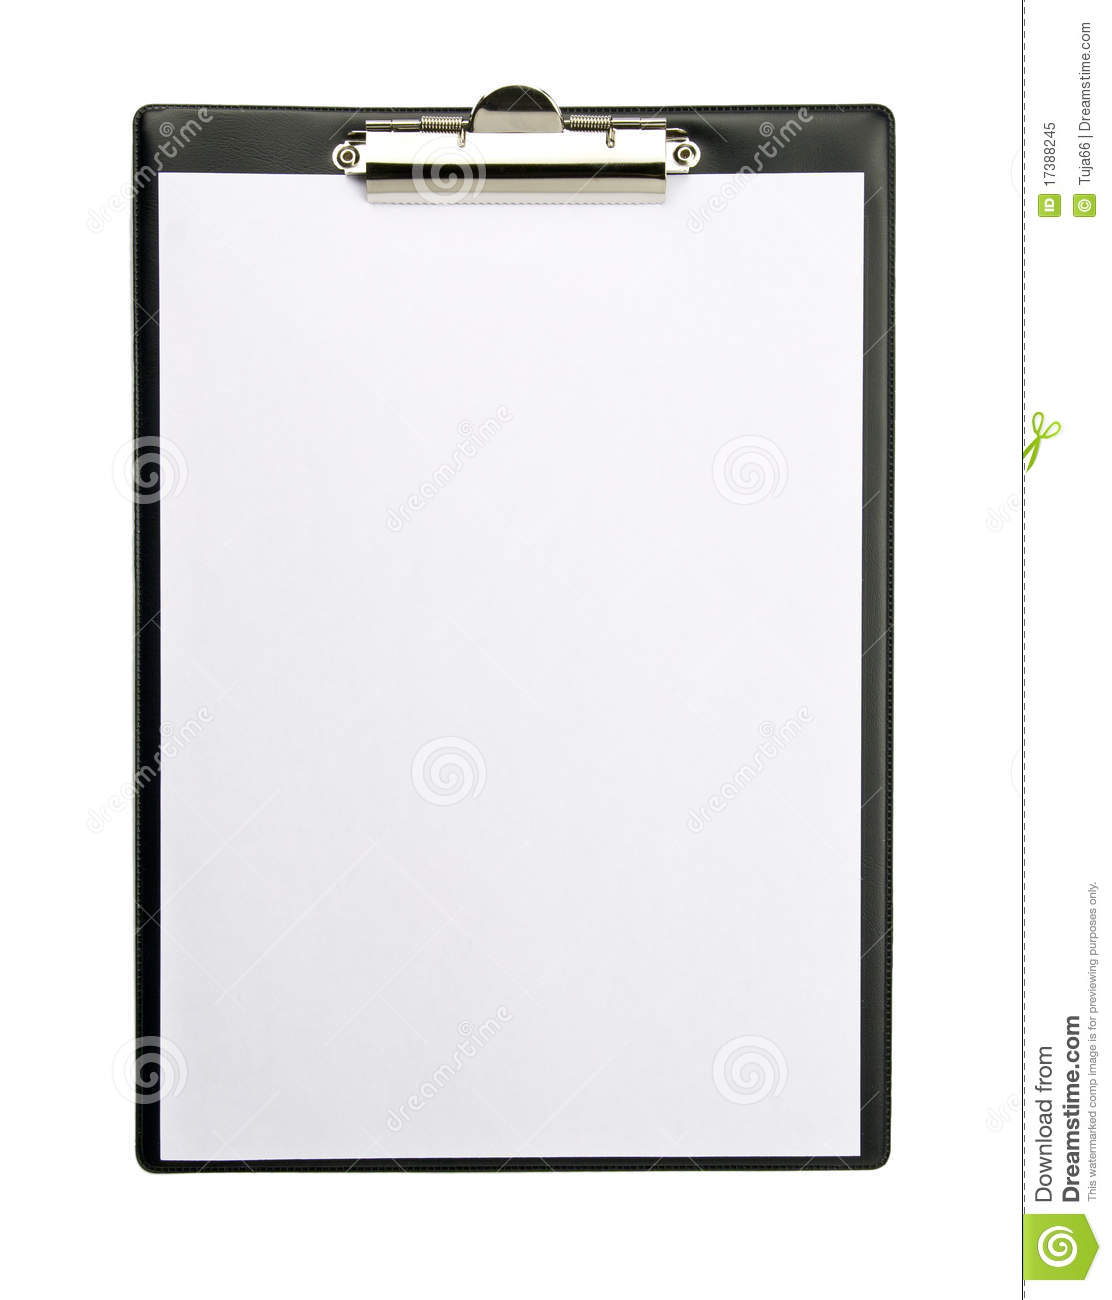 Clipboard Royalty Free Stock Photo - Image: 17388245